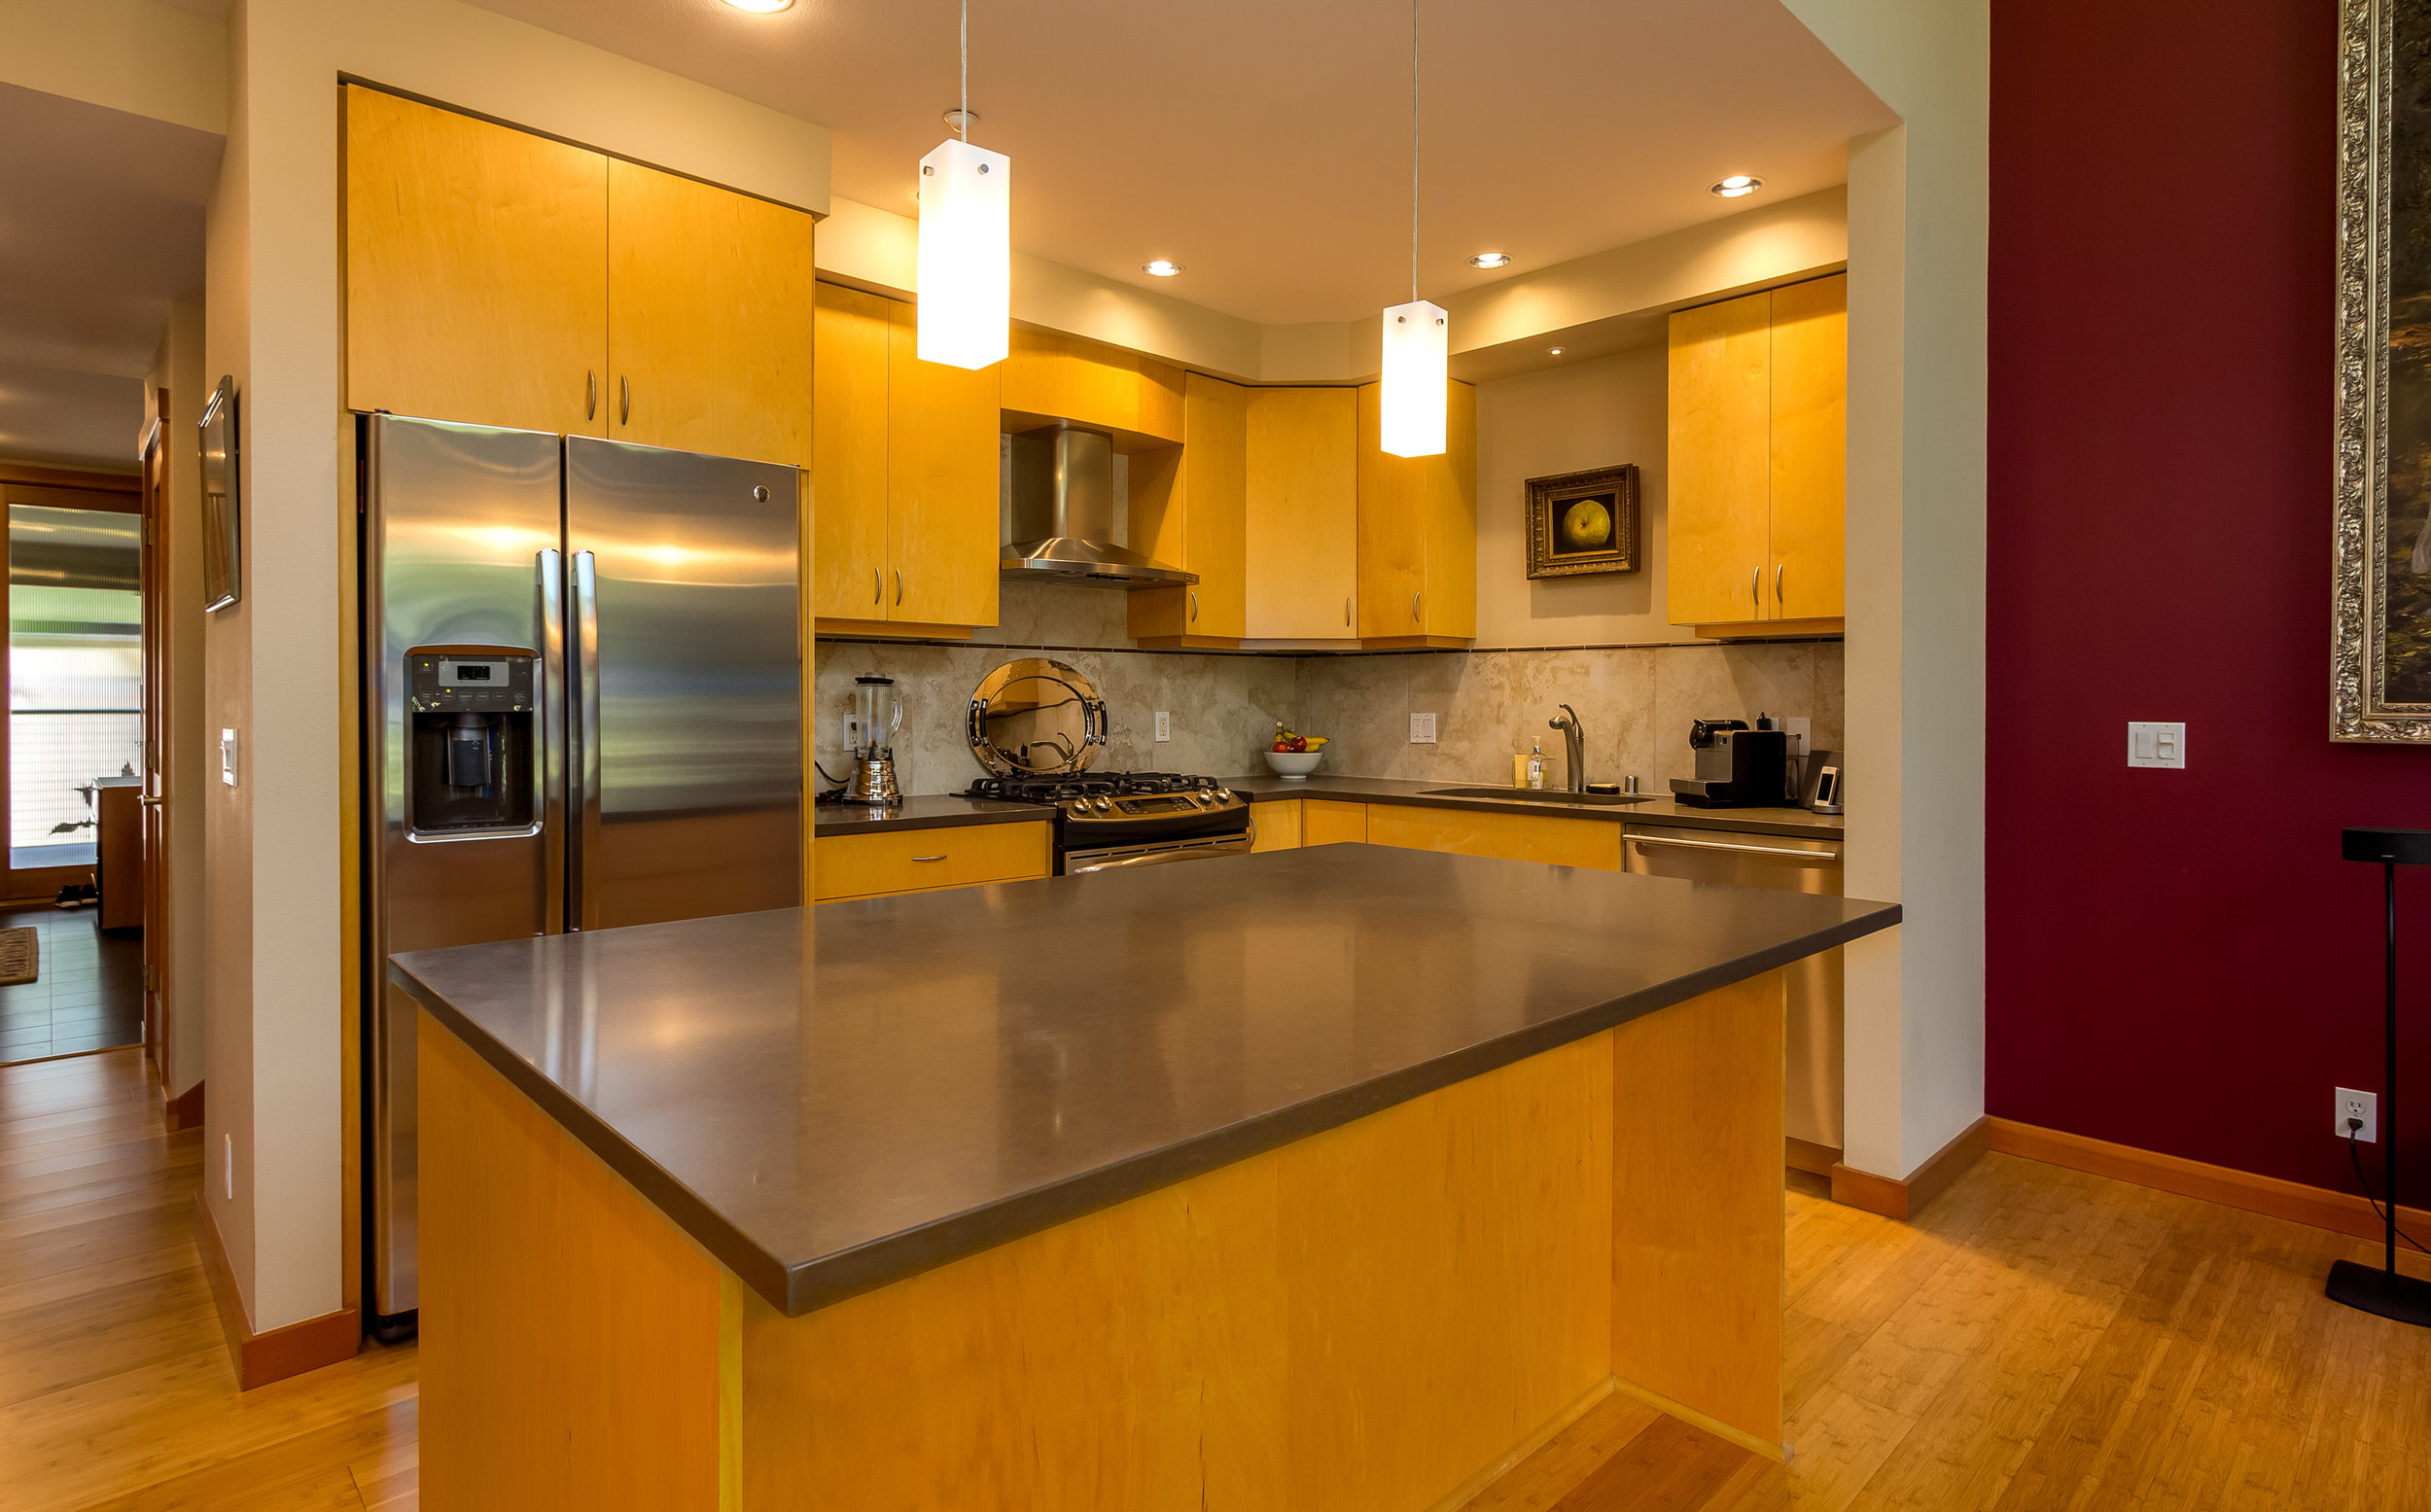 Spacious and bright, this kitchen has a large island for food prep, Quartz countertops, stainless appliances, a new refrigerator and more!